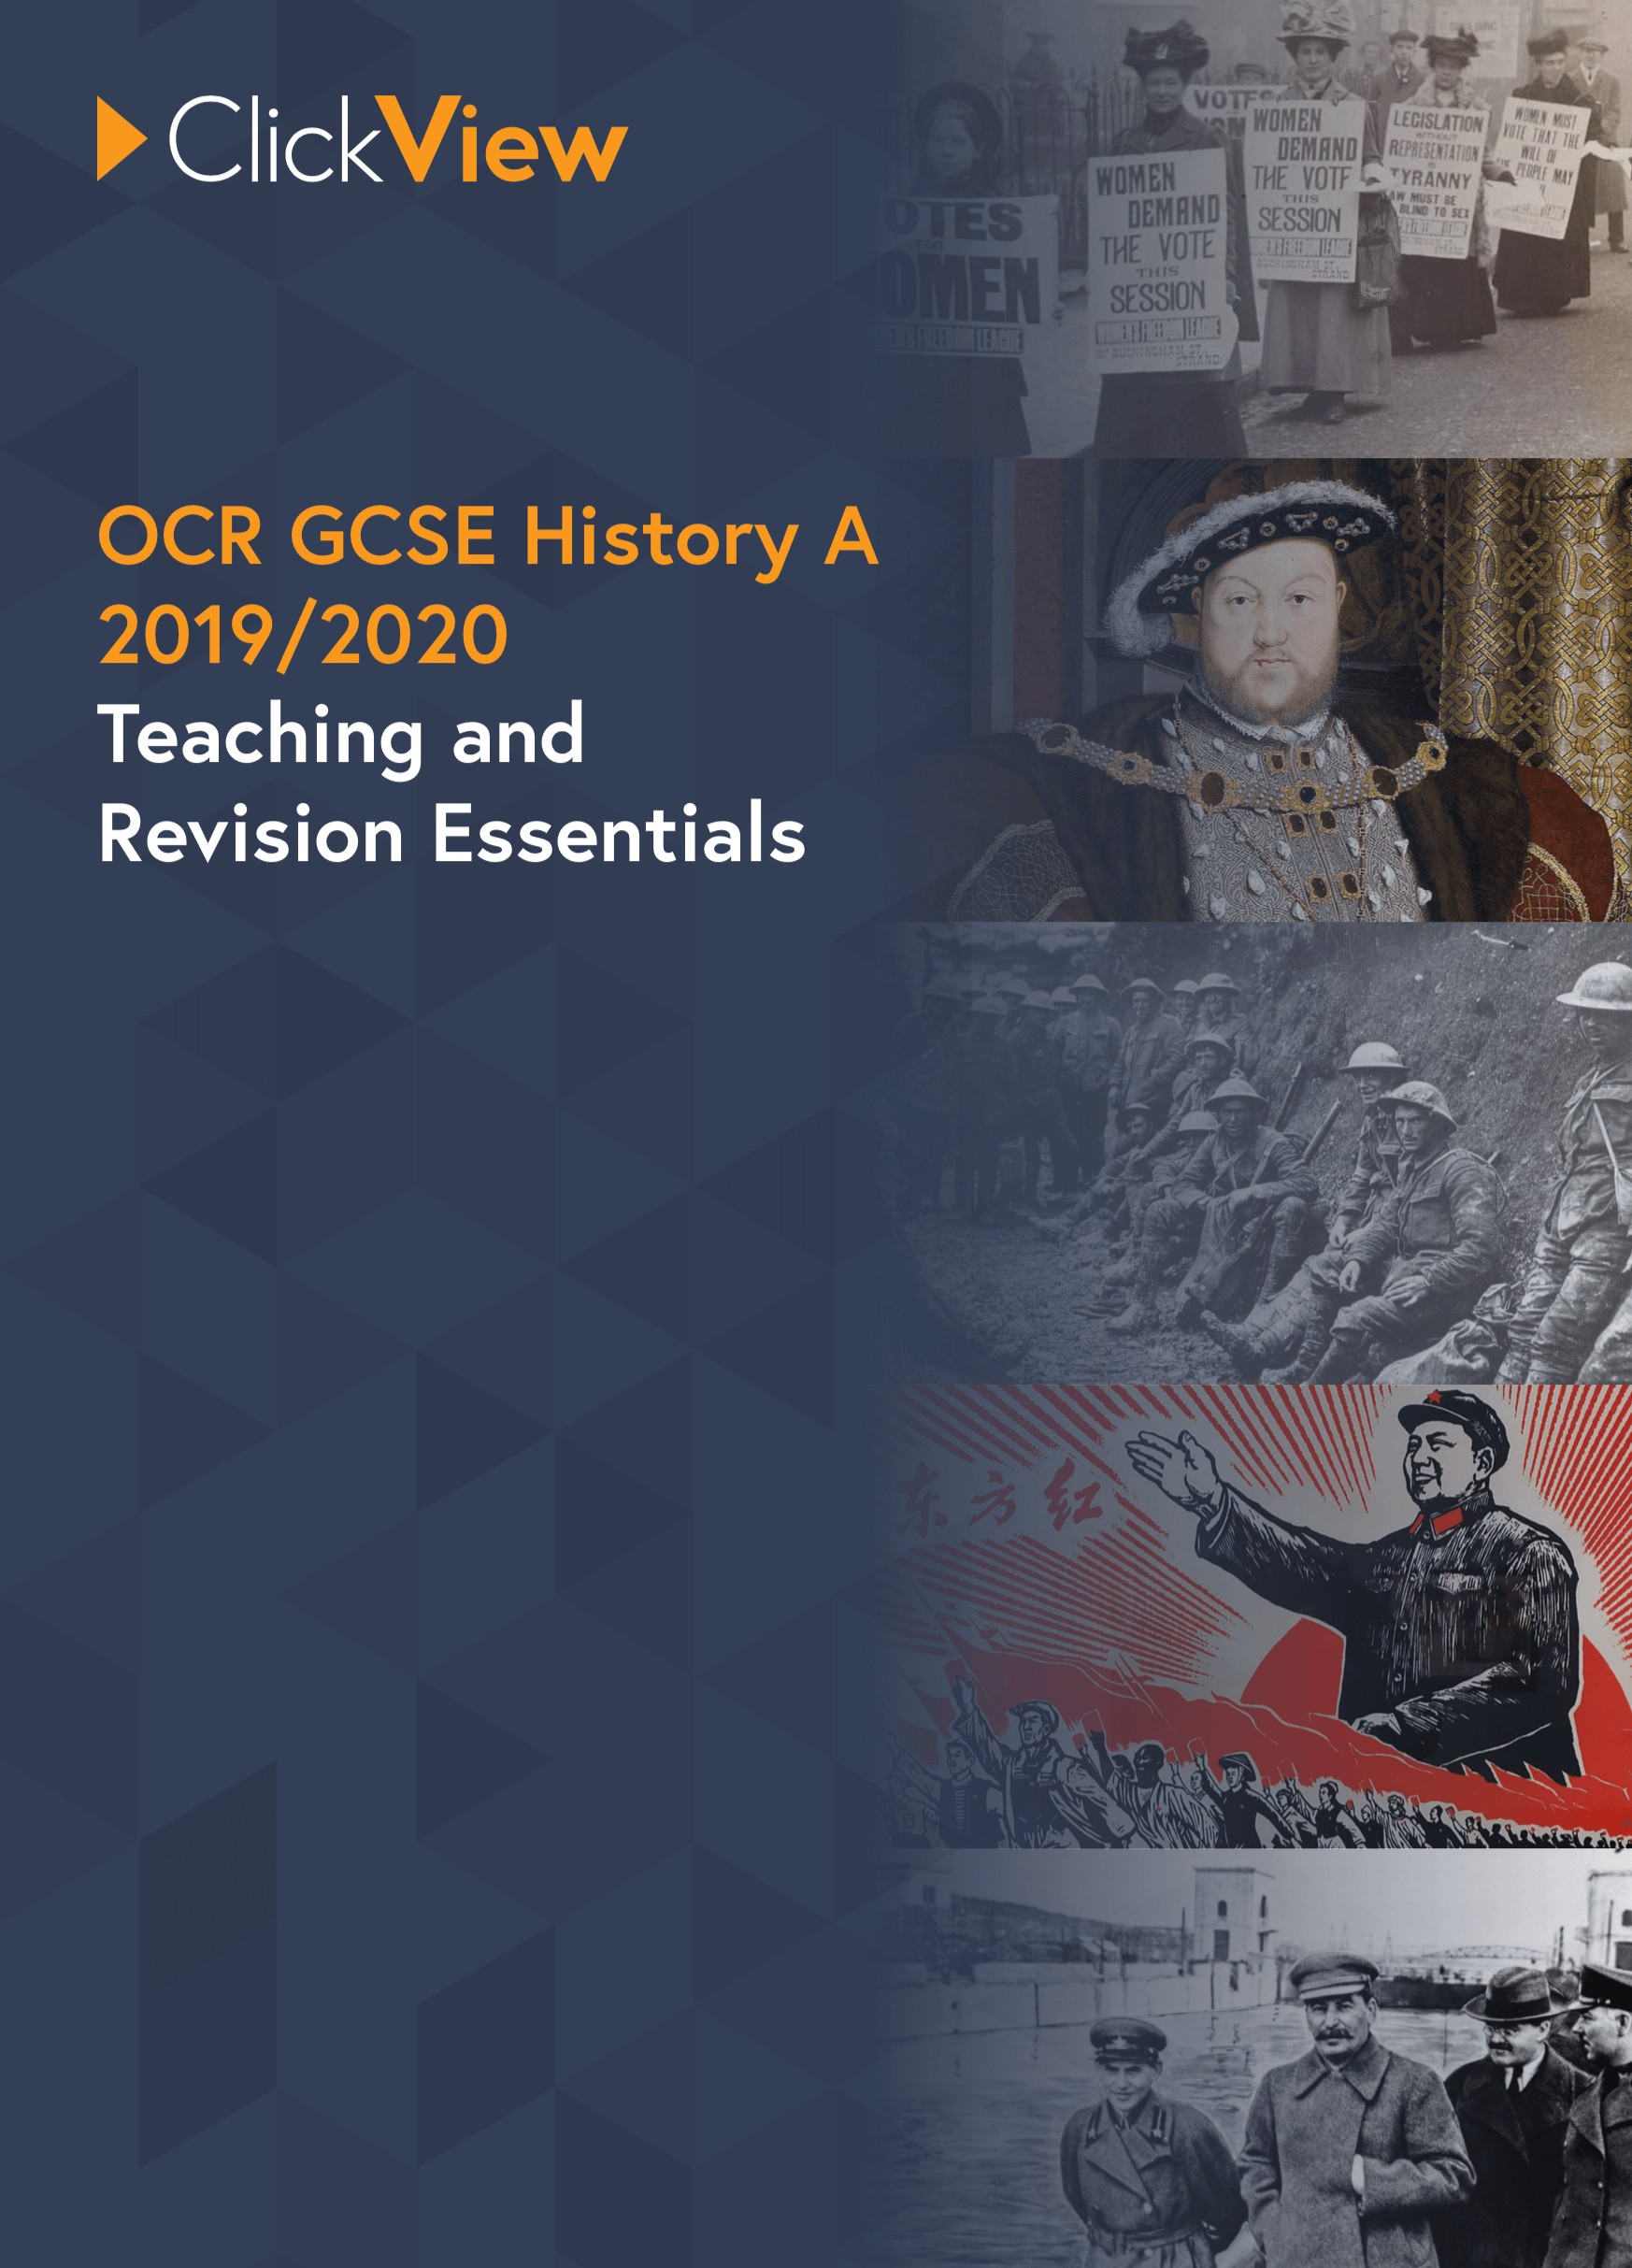 OCR GCSE History A - Teaching and Revision Essentials